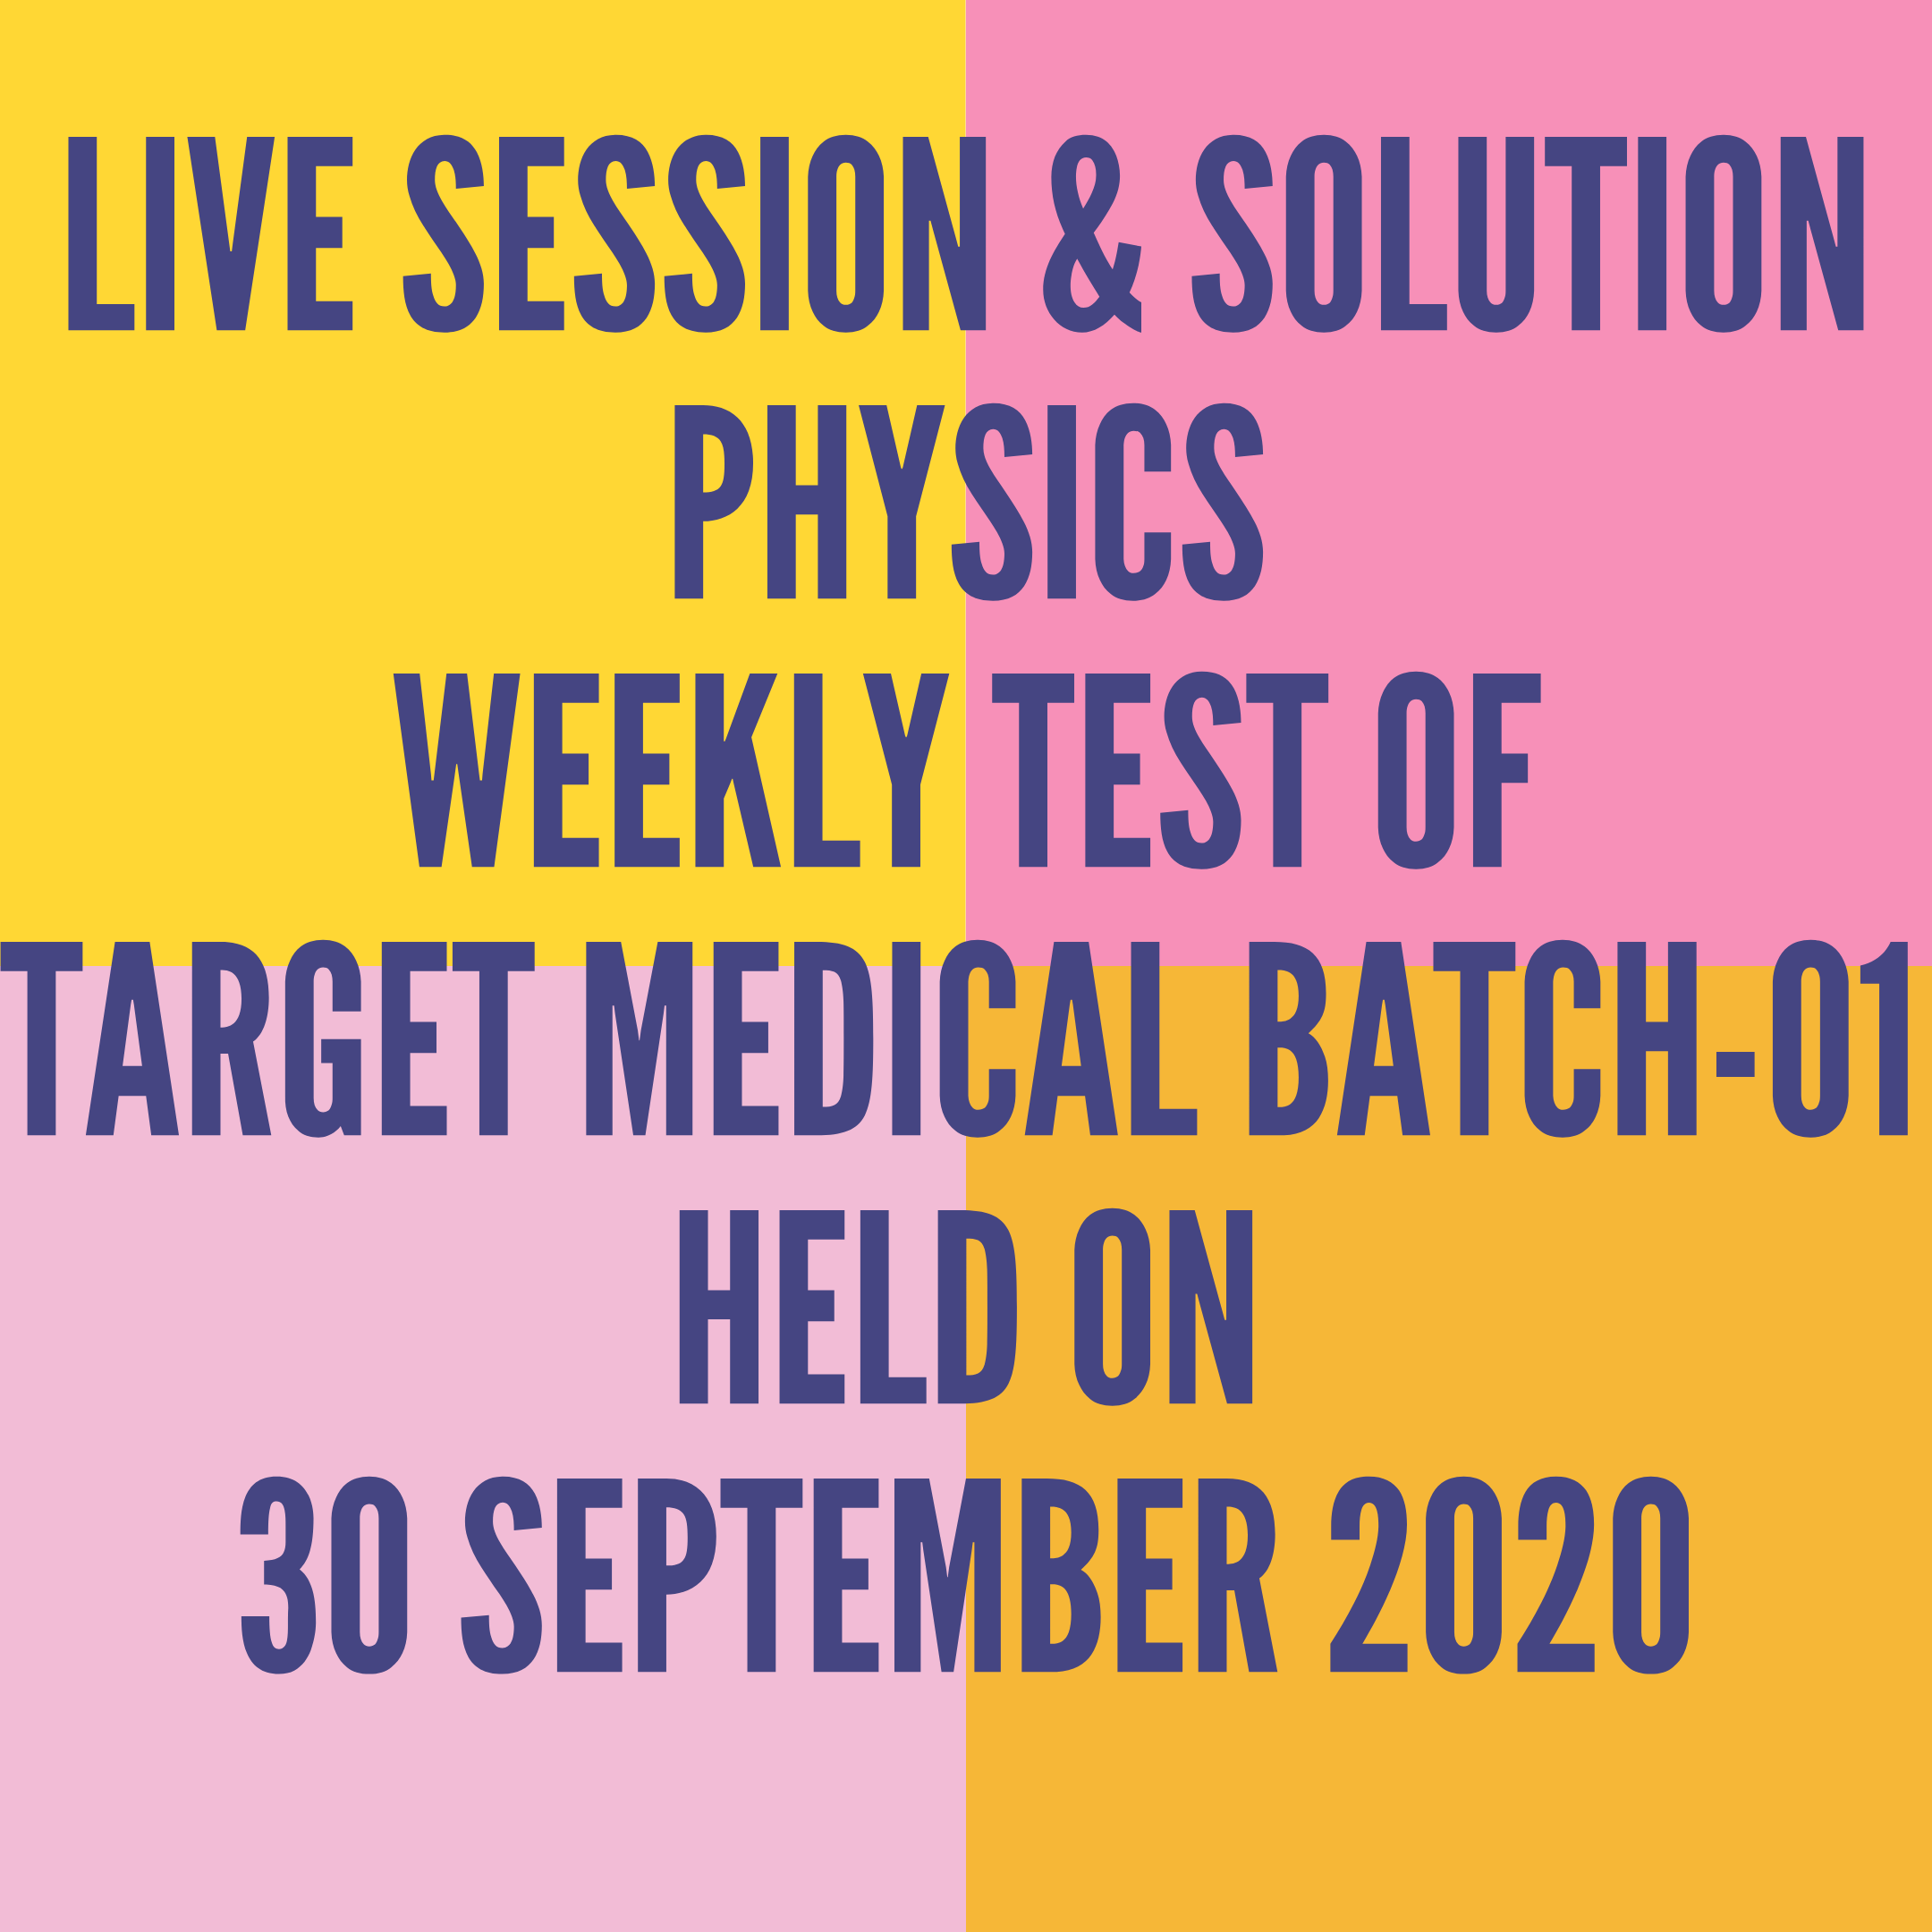 LIVE SESSION & SOLUTION PHYSICS WEEKLY TEST OF TARGET MEDICAL BATCH-01  HELD ON 30 SEPTEMBER 2020